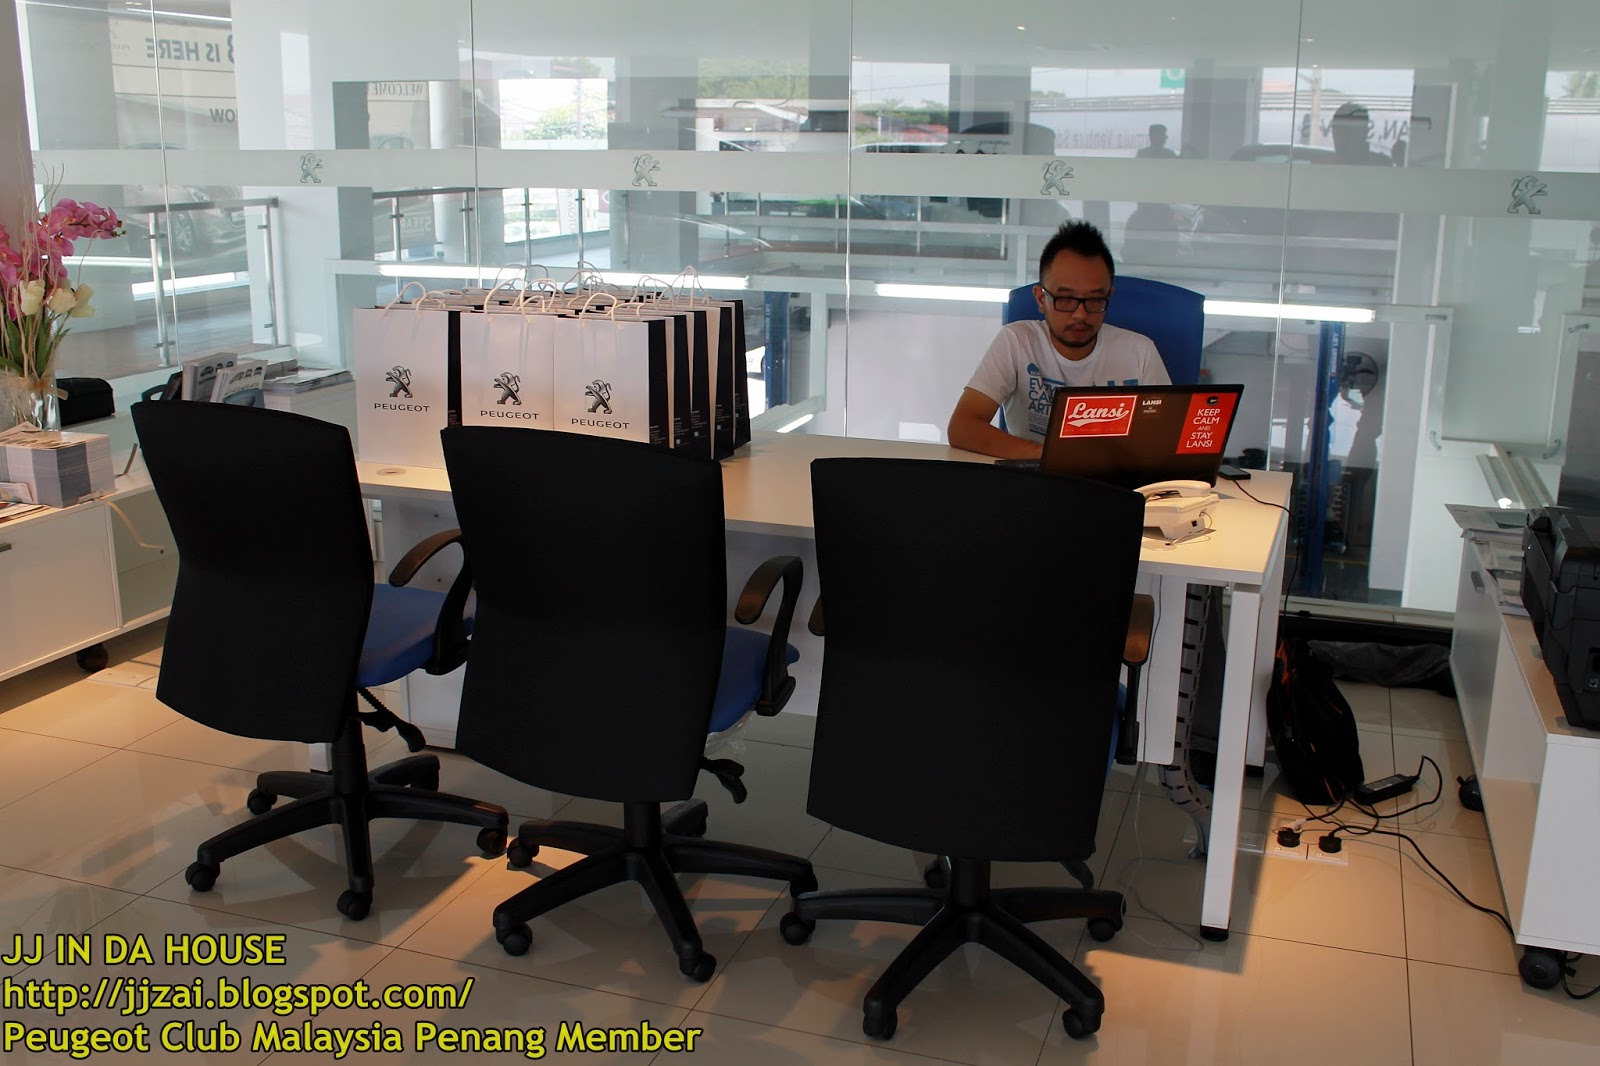 office chair penang low profile camping chairs jj in da house peugeot club malaysia member cs euro auto sdn bhd